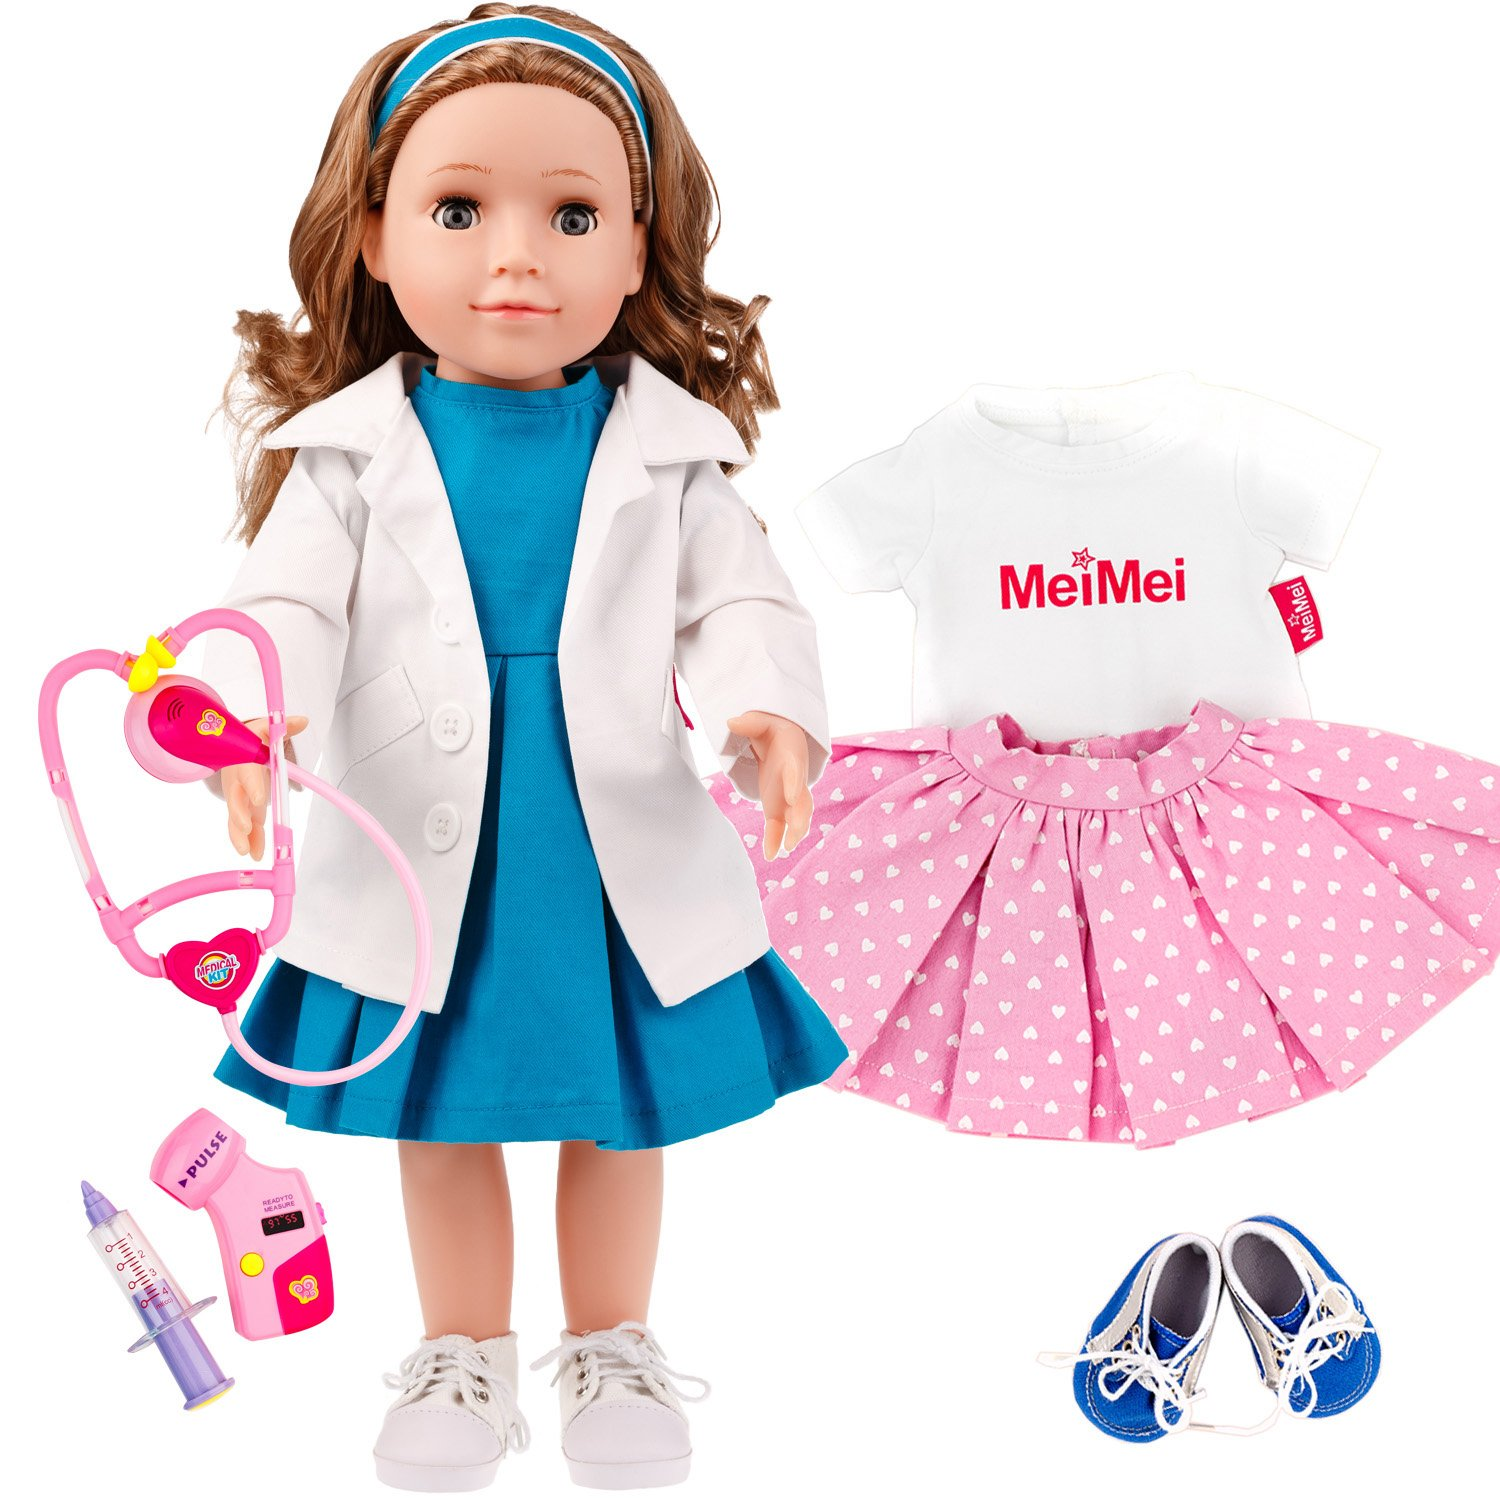 MeiMei 18 inch Doll Girl Doctor Nurse Playset Toy with Clothes Set Outfit Eyes Can Open & Close Toddler Dolls for Kids 3+ Adorable in Gift Box